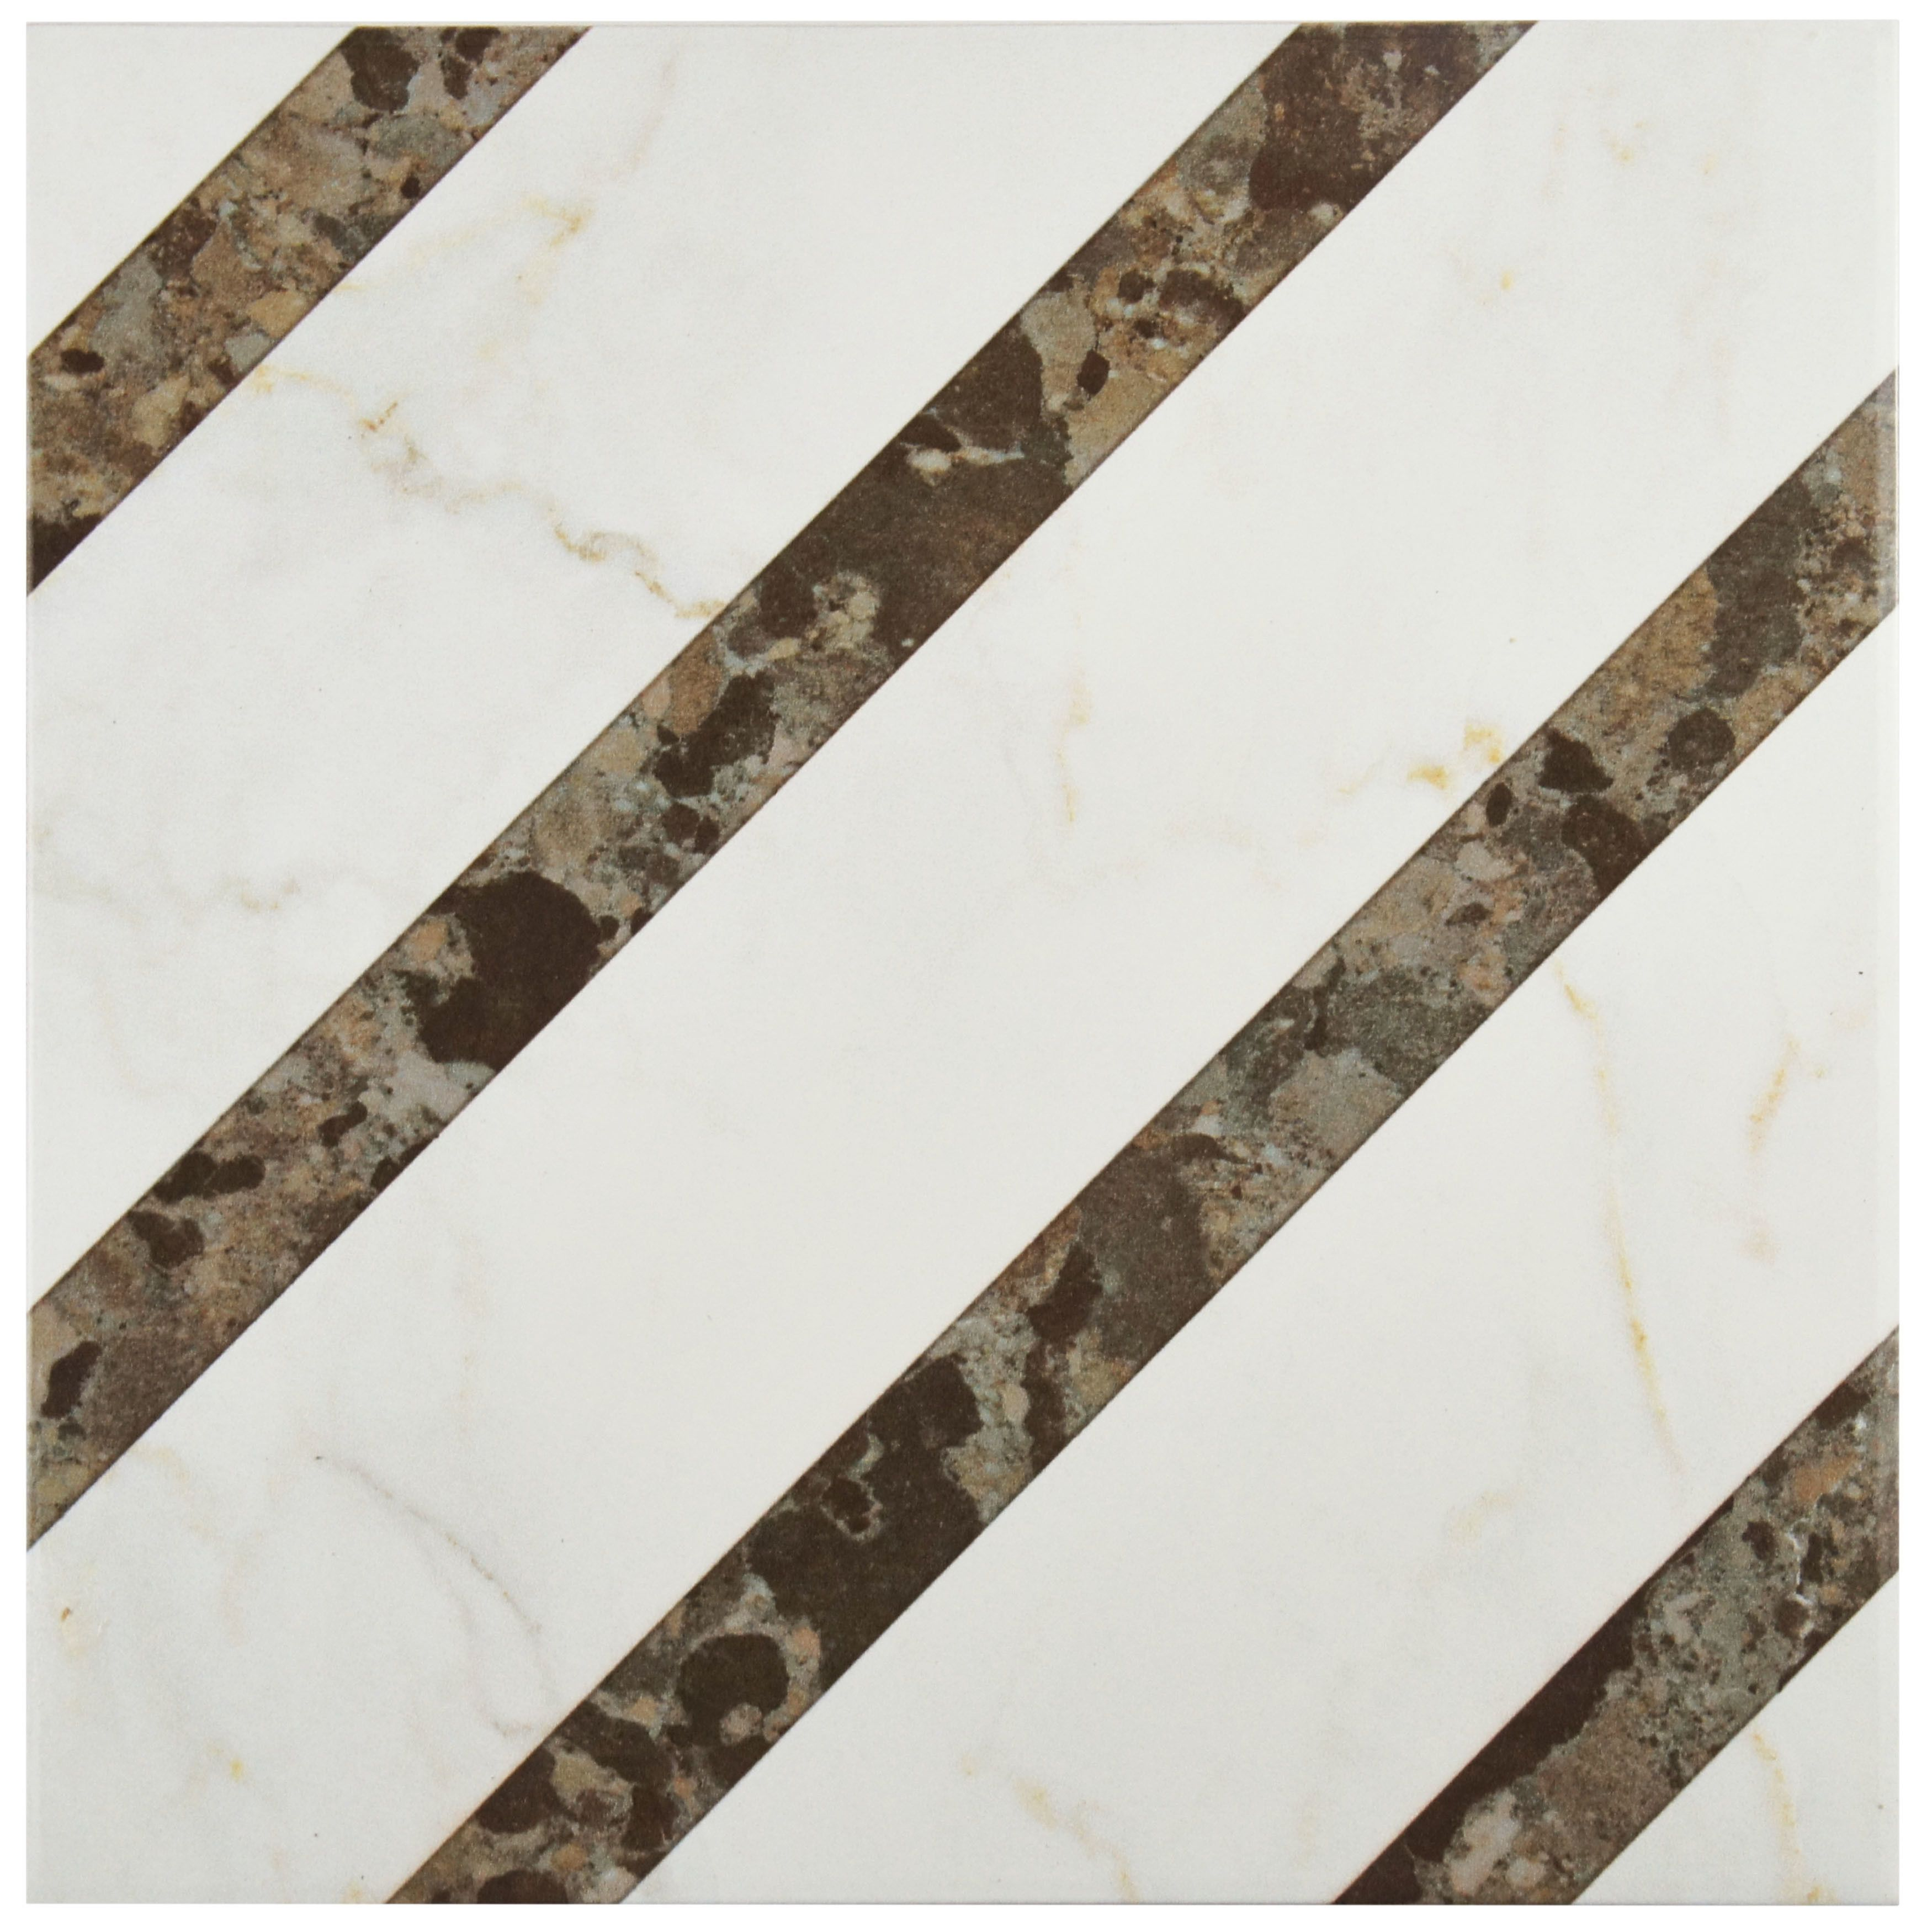 Shop Wayfair for View All Tile to match every style and budget ...